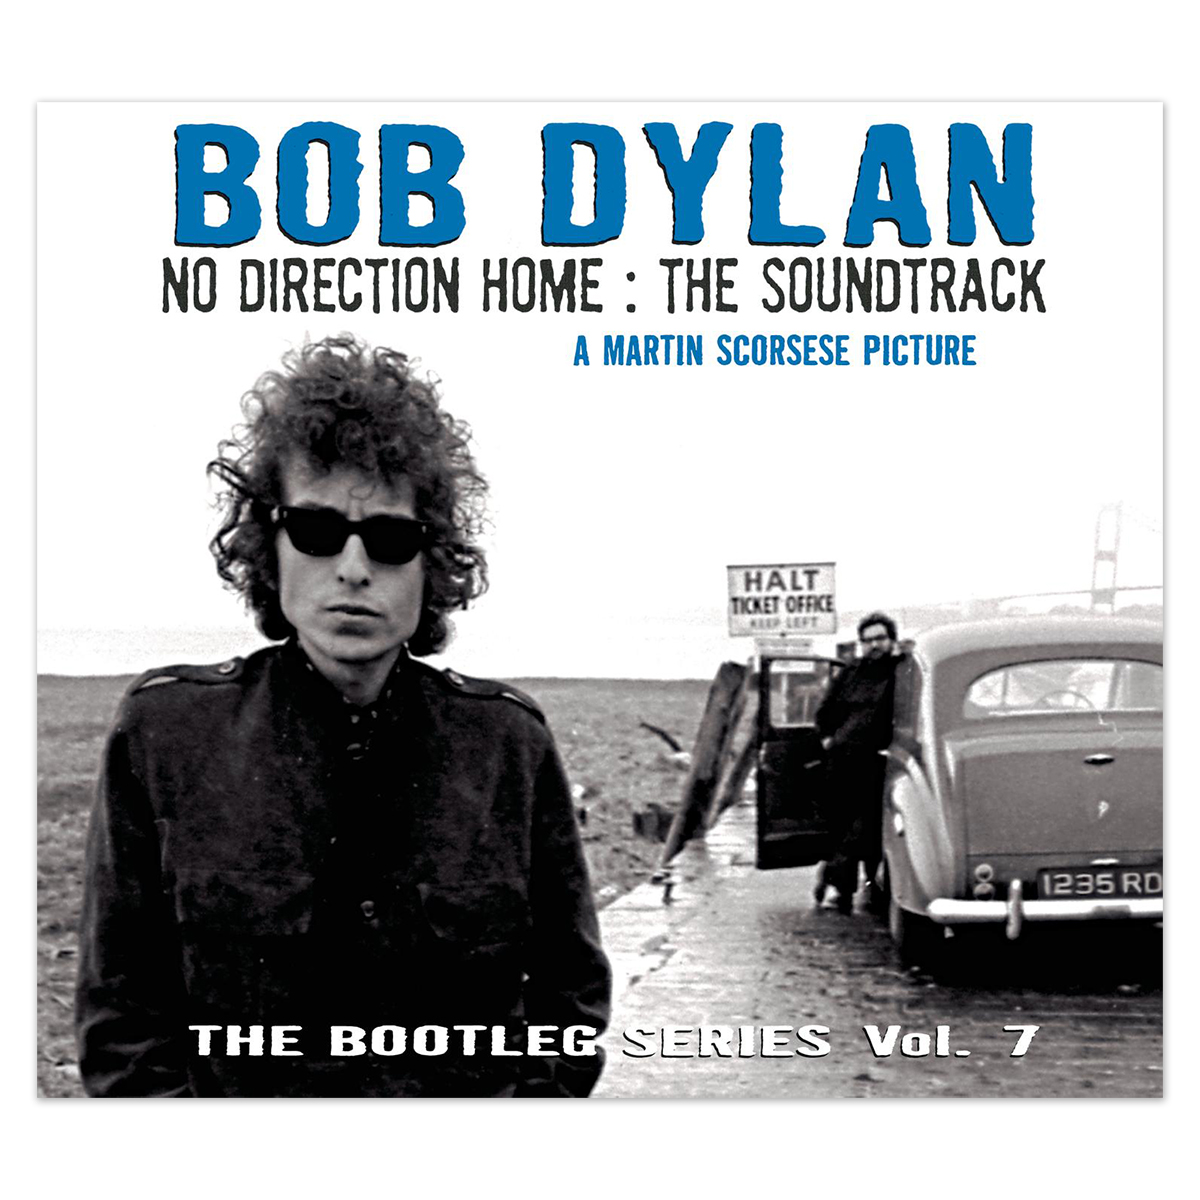 The Bootleg Series, Vol 7: No Direction Home CD